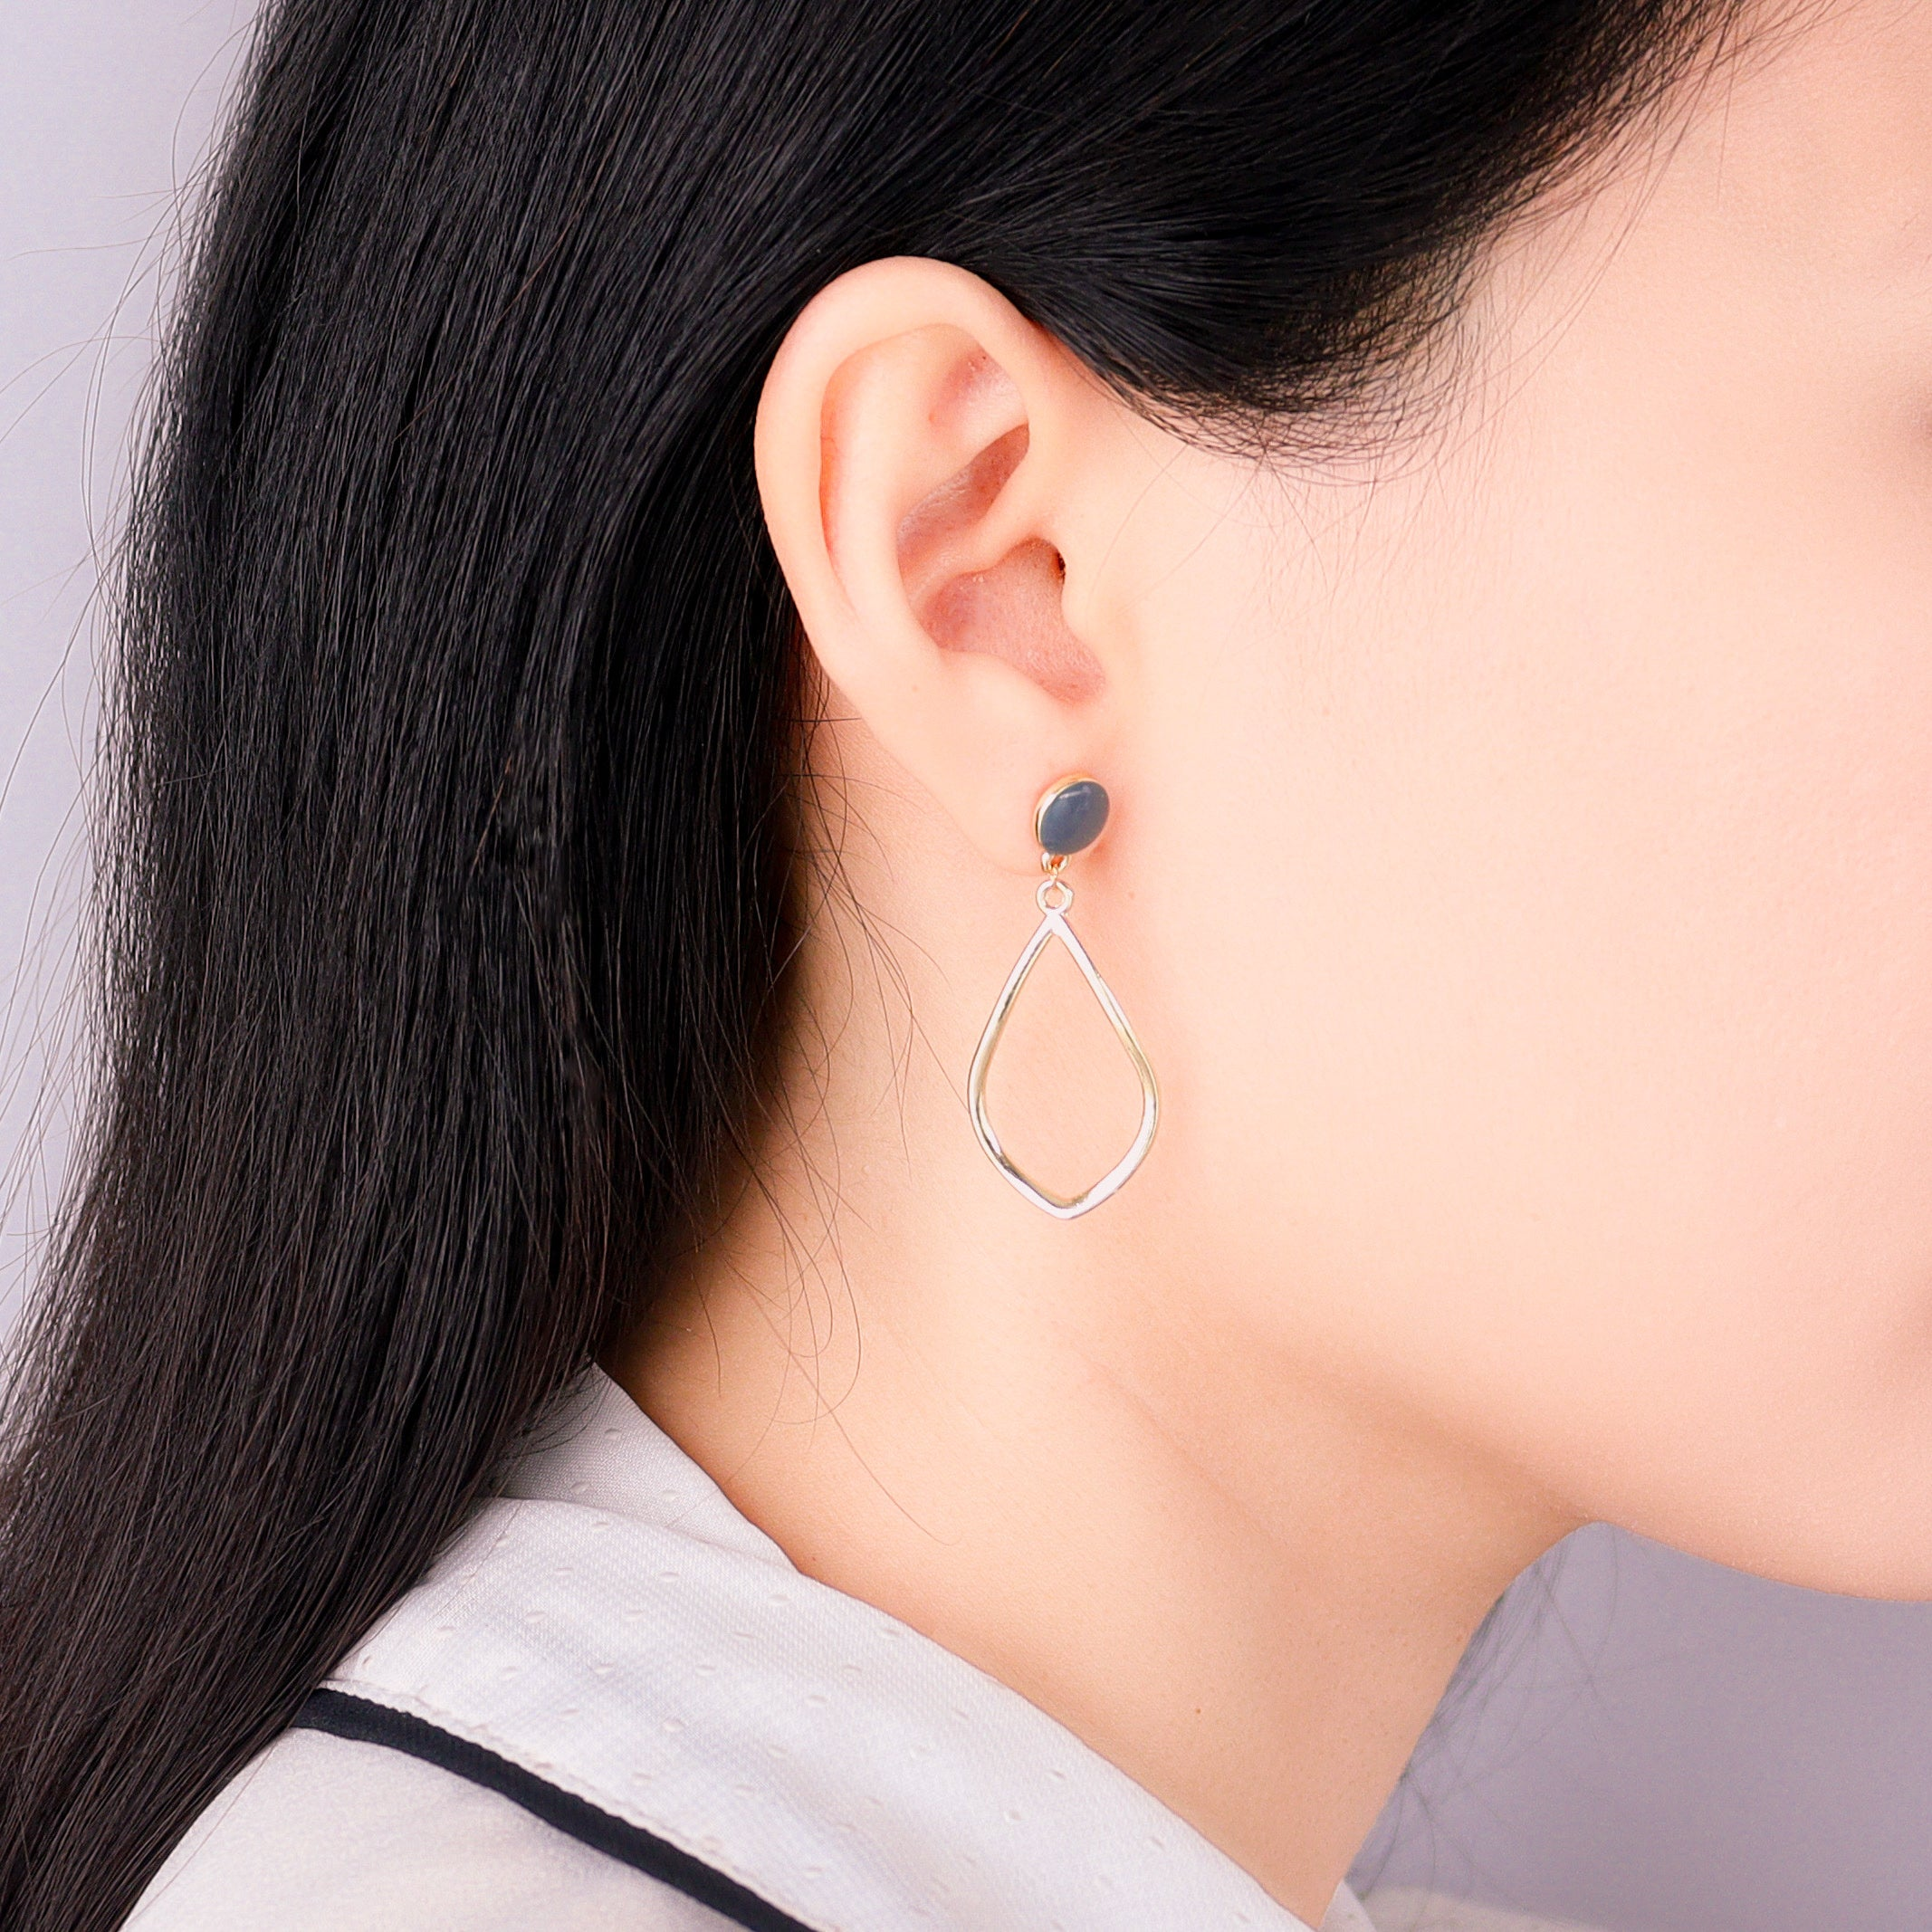 Golden Elliptical Earrings